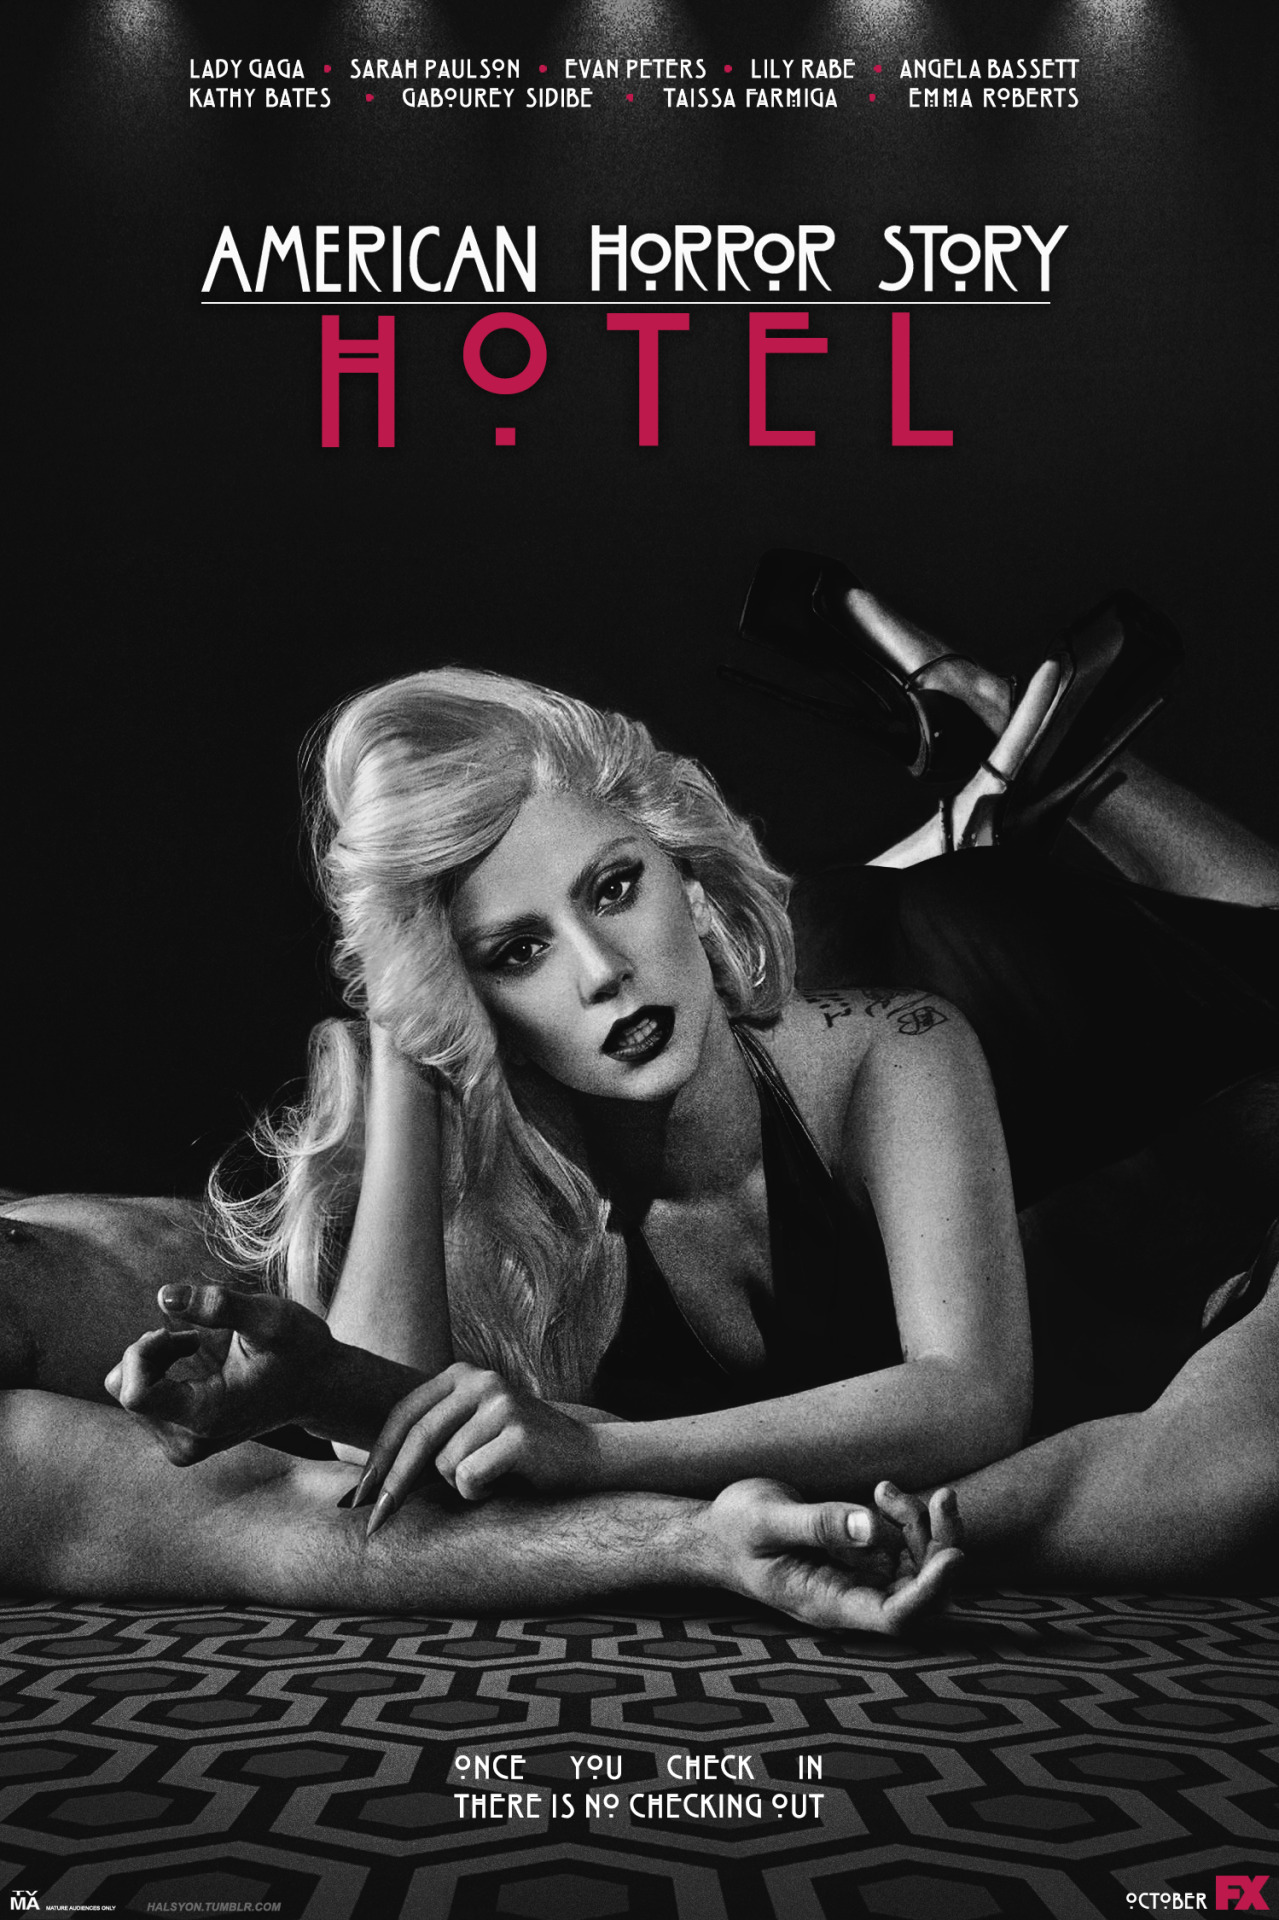 Boomstick Comics » Blog Archive Trailer Drops For 'American Horror Story: Hotel'!!! - Boomstick ...